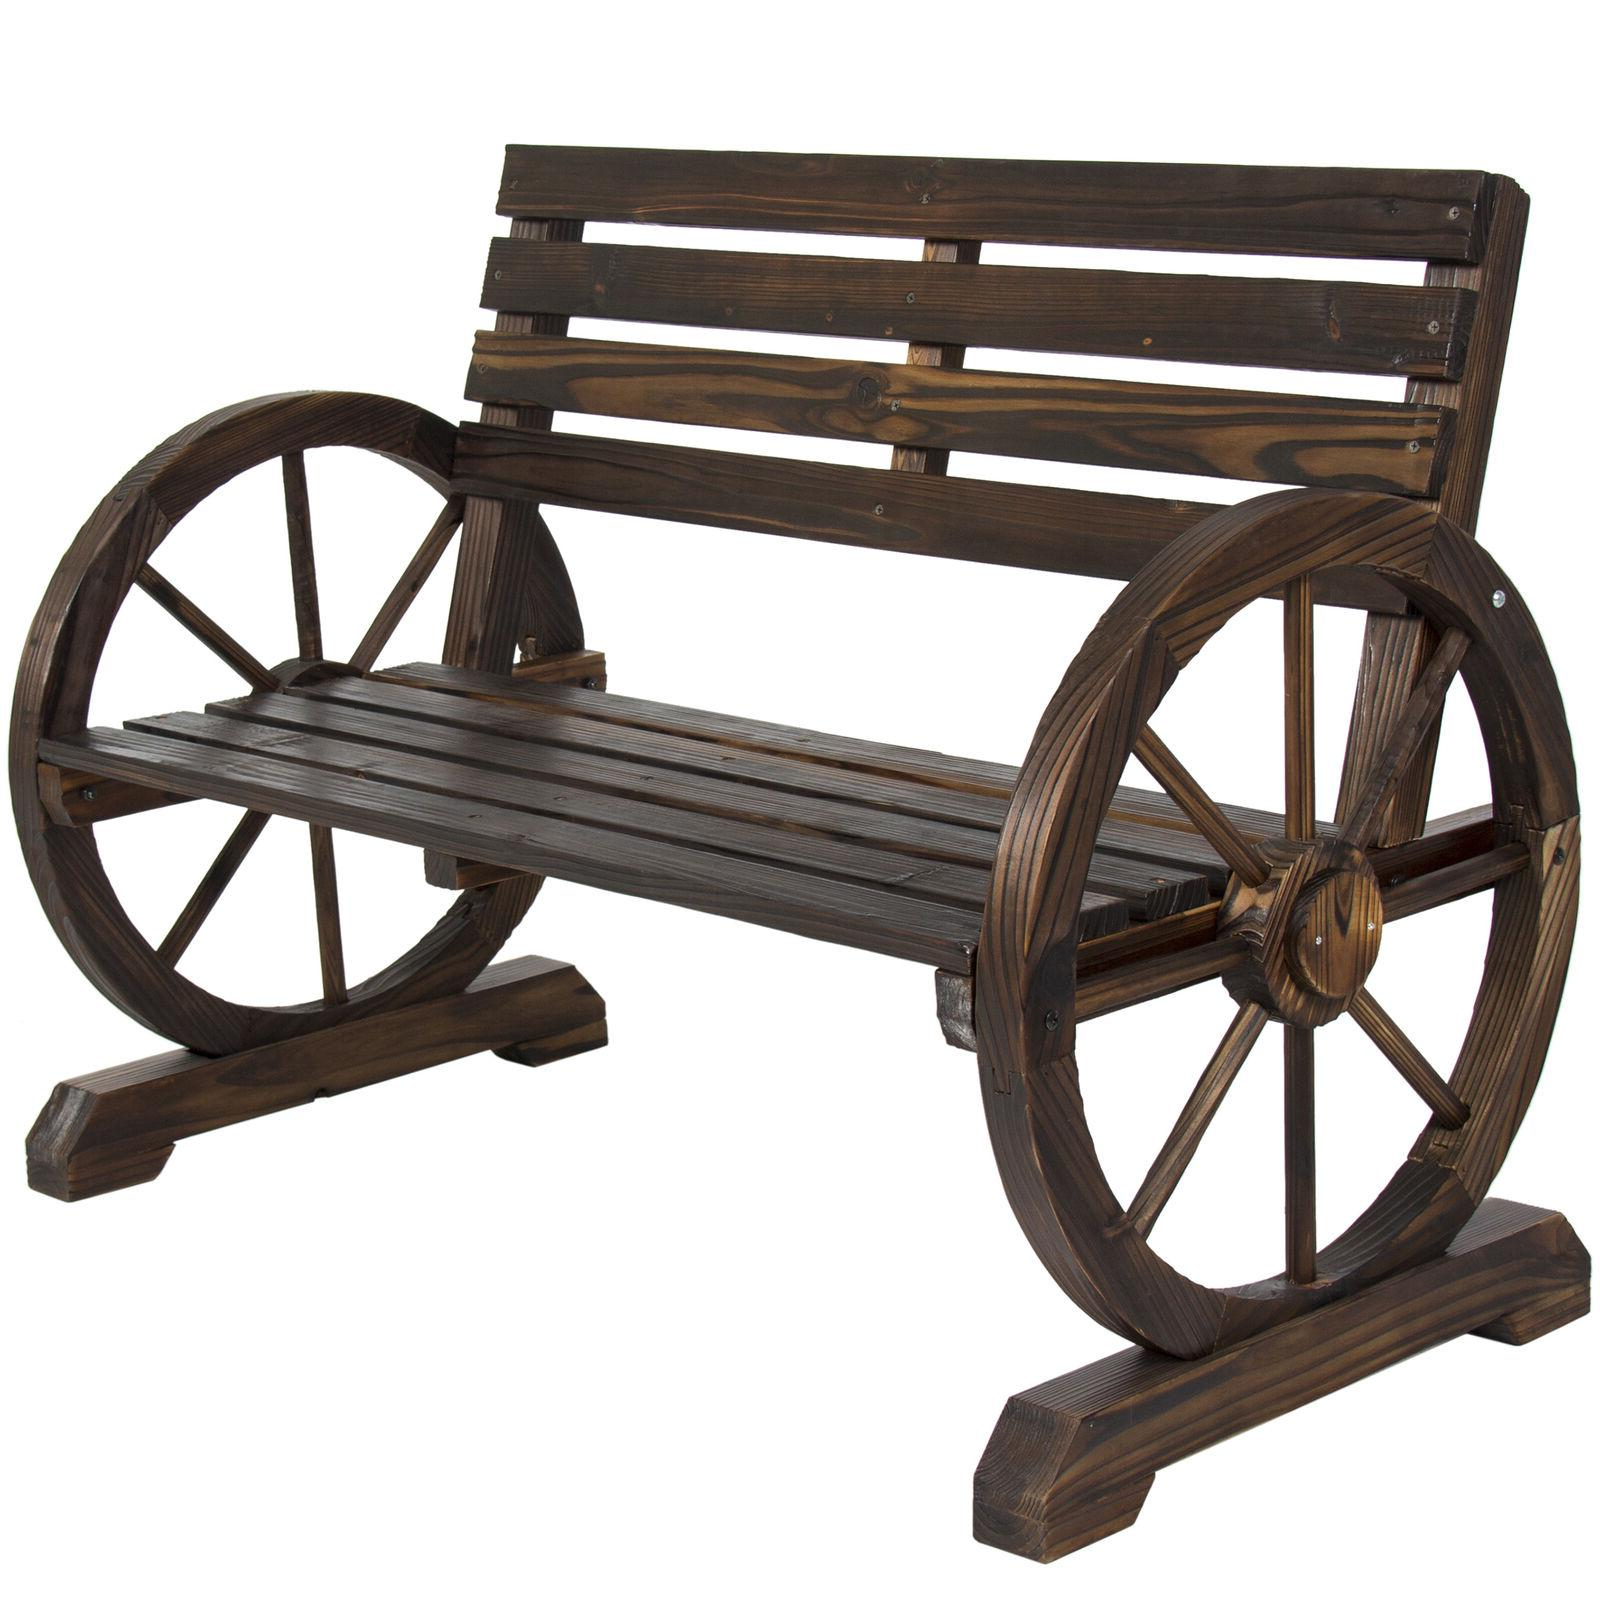 Fir Wooden Rustic Wagon Wheel Bench Seating Patio/Garden/Out